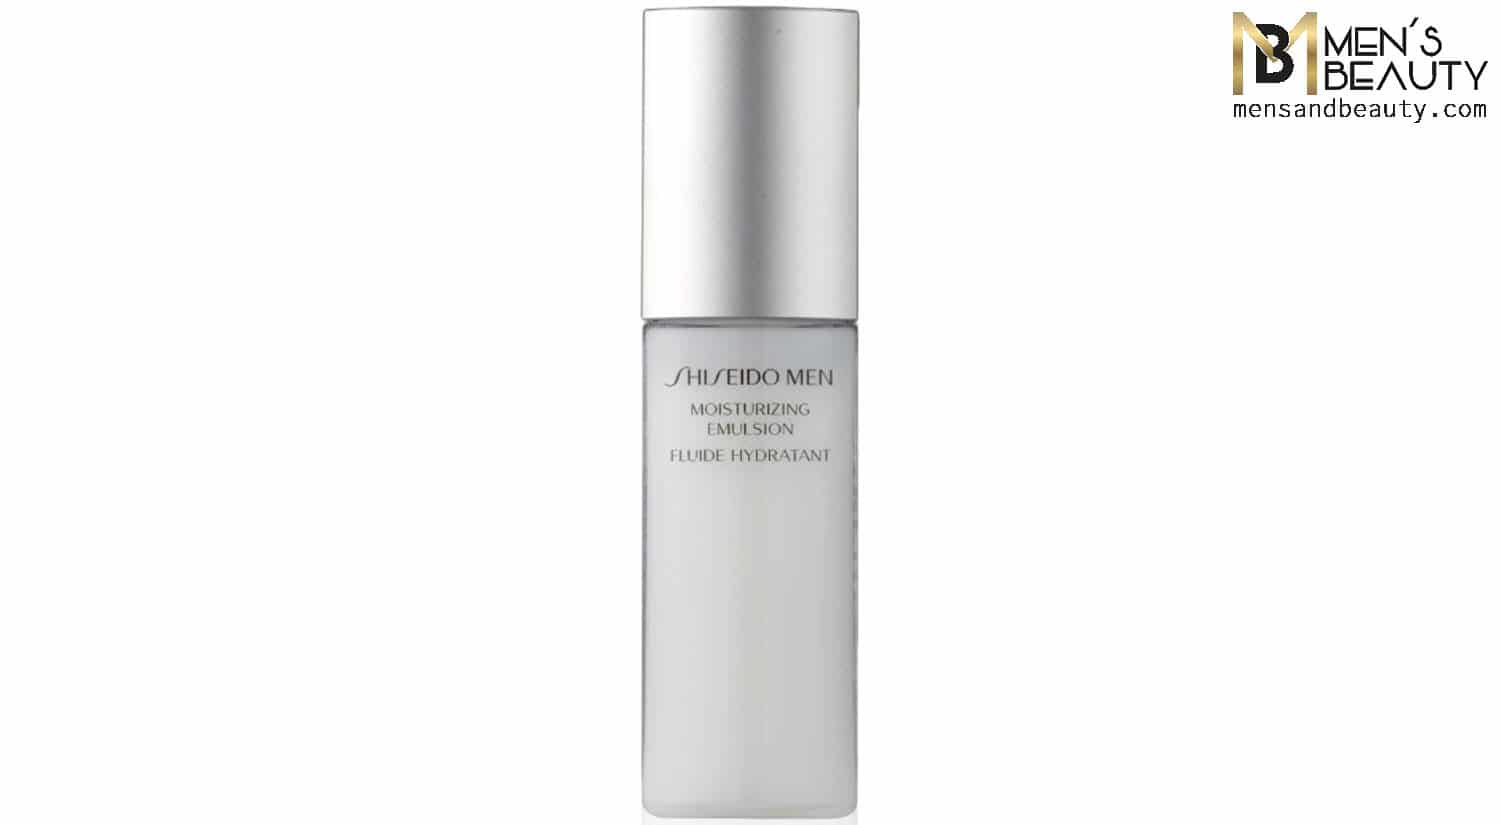 mejor crema hidratante hombre men moisturizing emulsion for men shiseido men